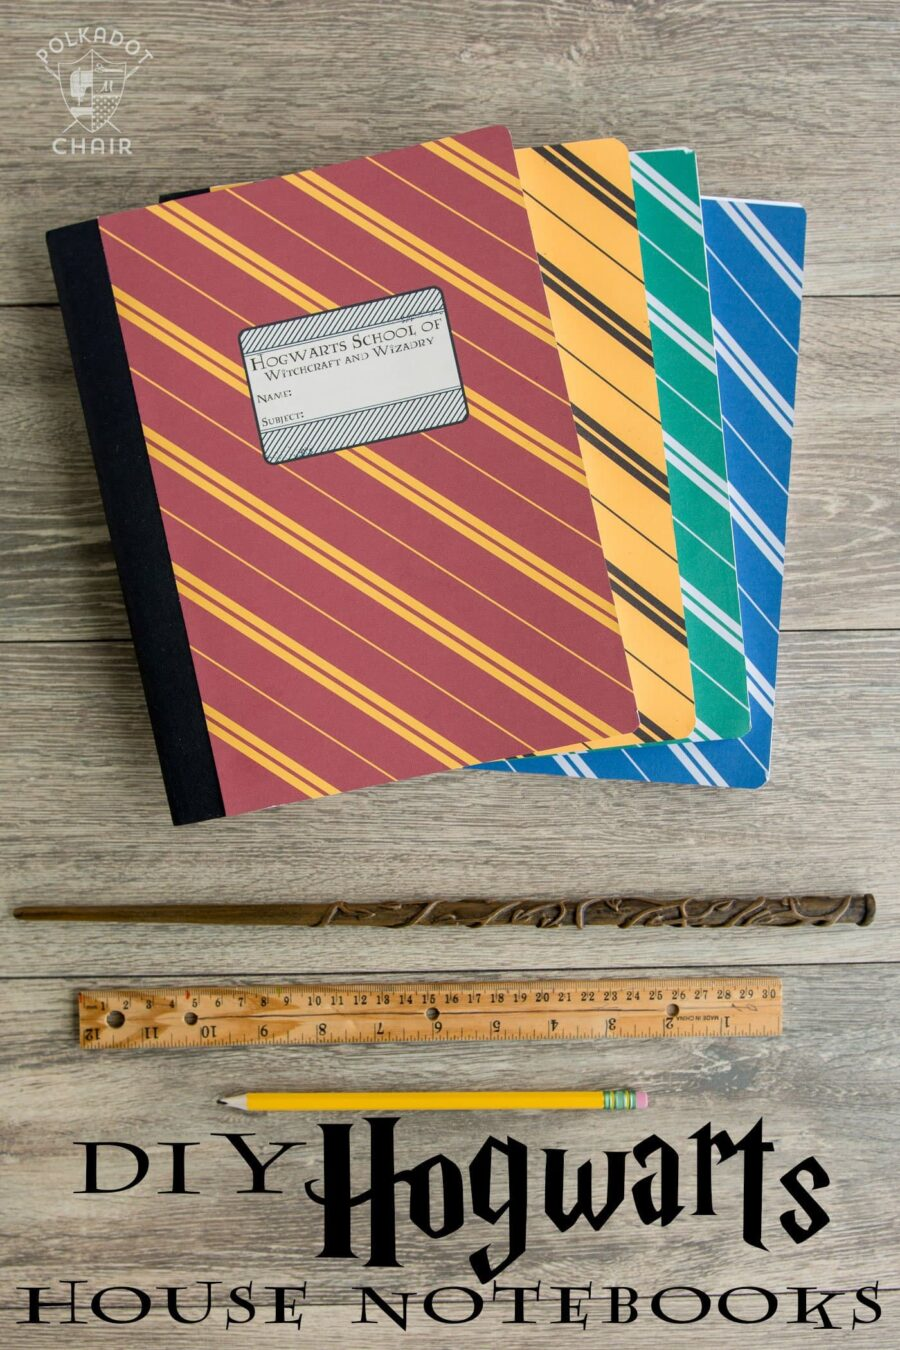 Harry Potter Inspired Notebook Covers